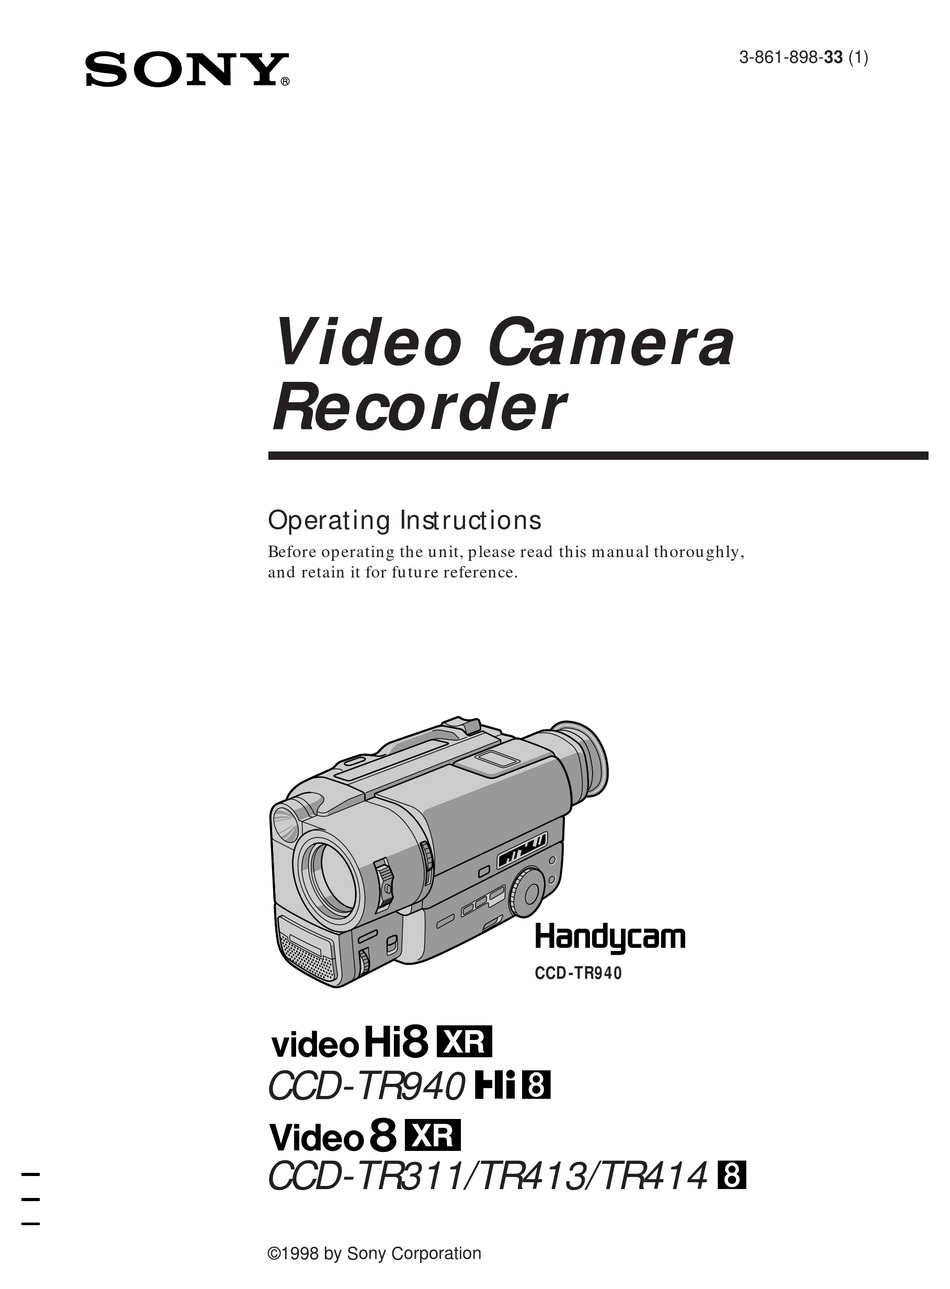 SONY HANDYCAM CCD-TR311 OPERATING INSTRUCTIONS MANUAL Pdf